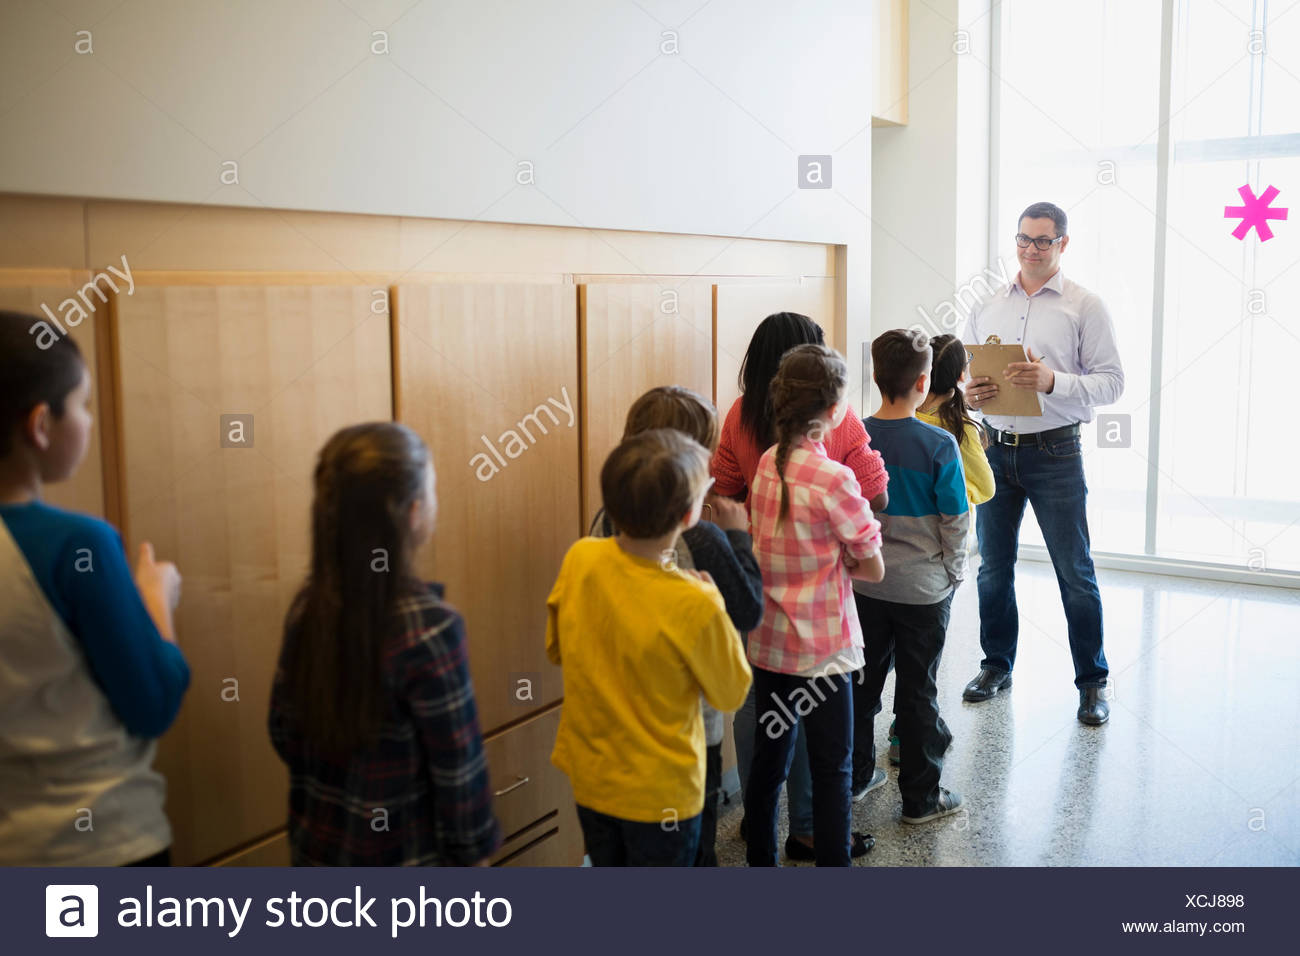 Teacher with clipboard and students lined up corridor - Stock Image